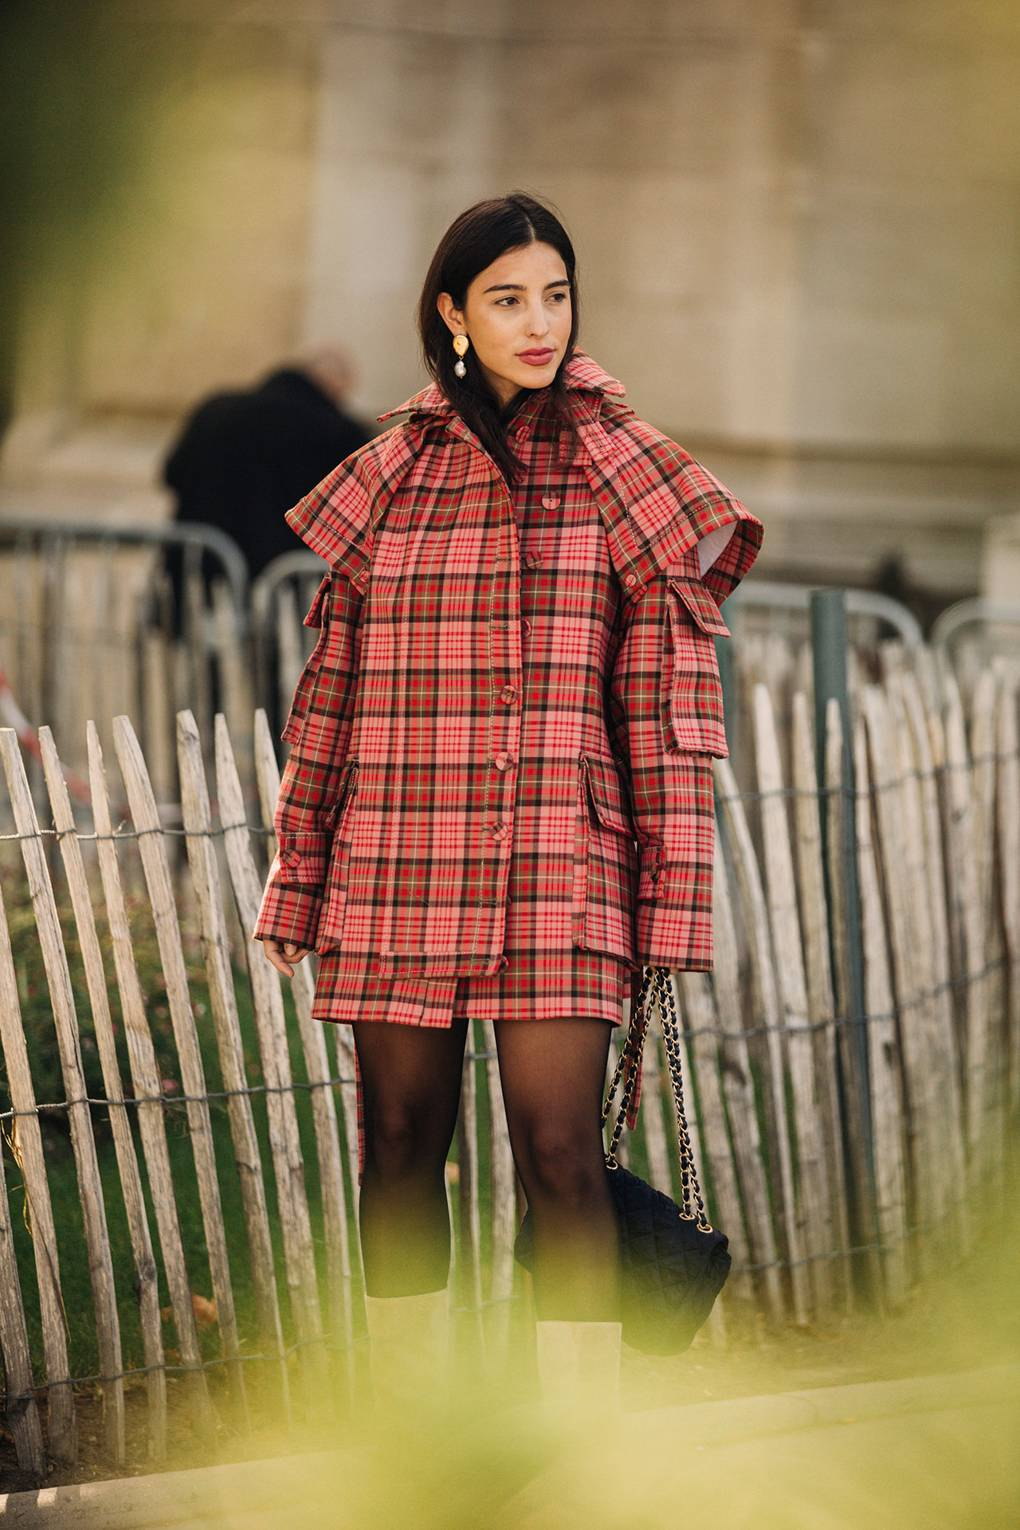 paris fashion week 2019 street style